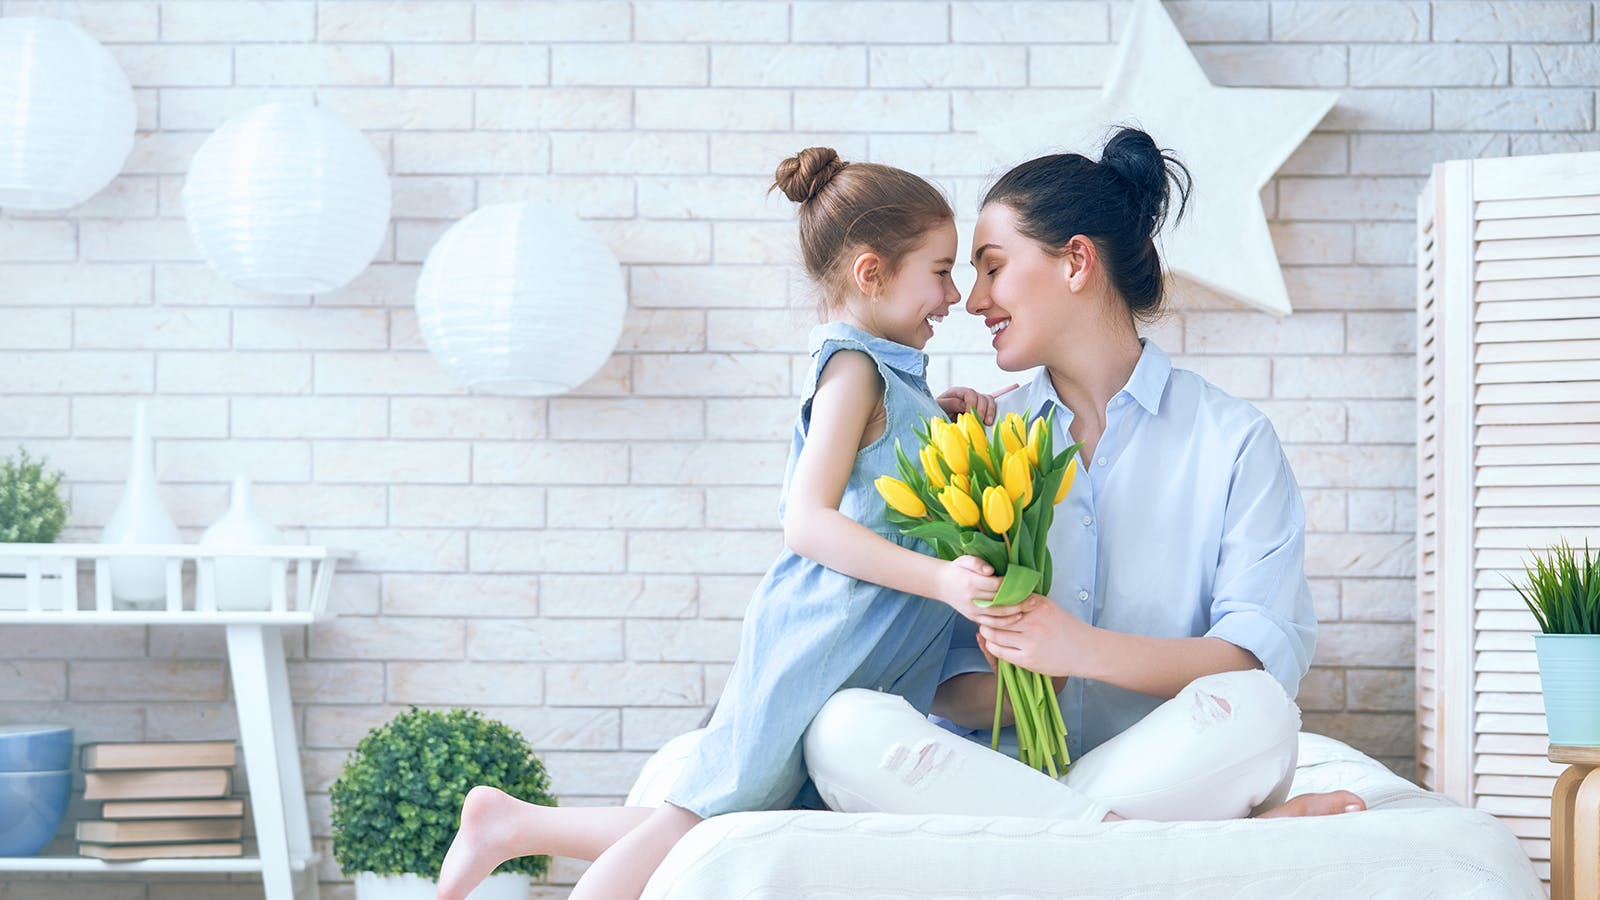 9 At-Home Mother's Day Ideas That Will Melt Her Heart